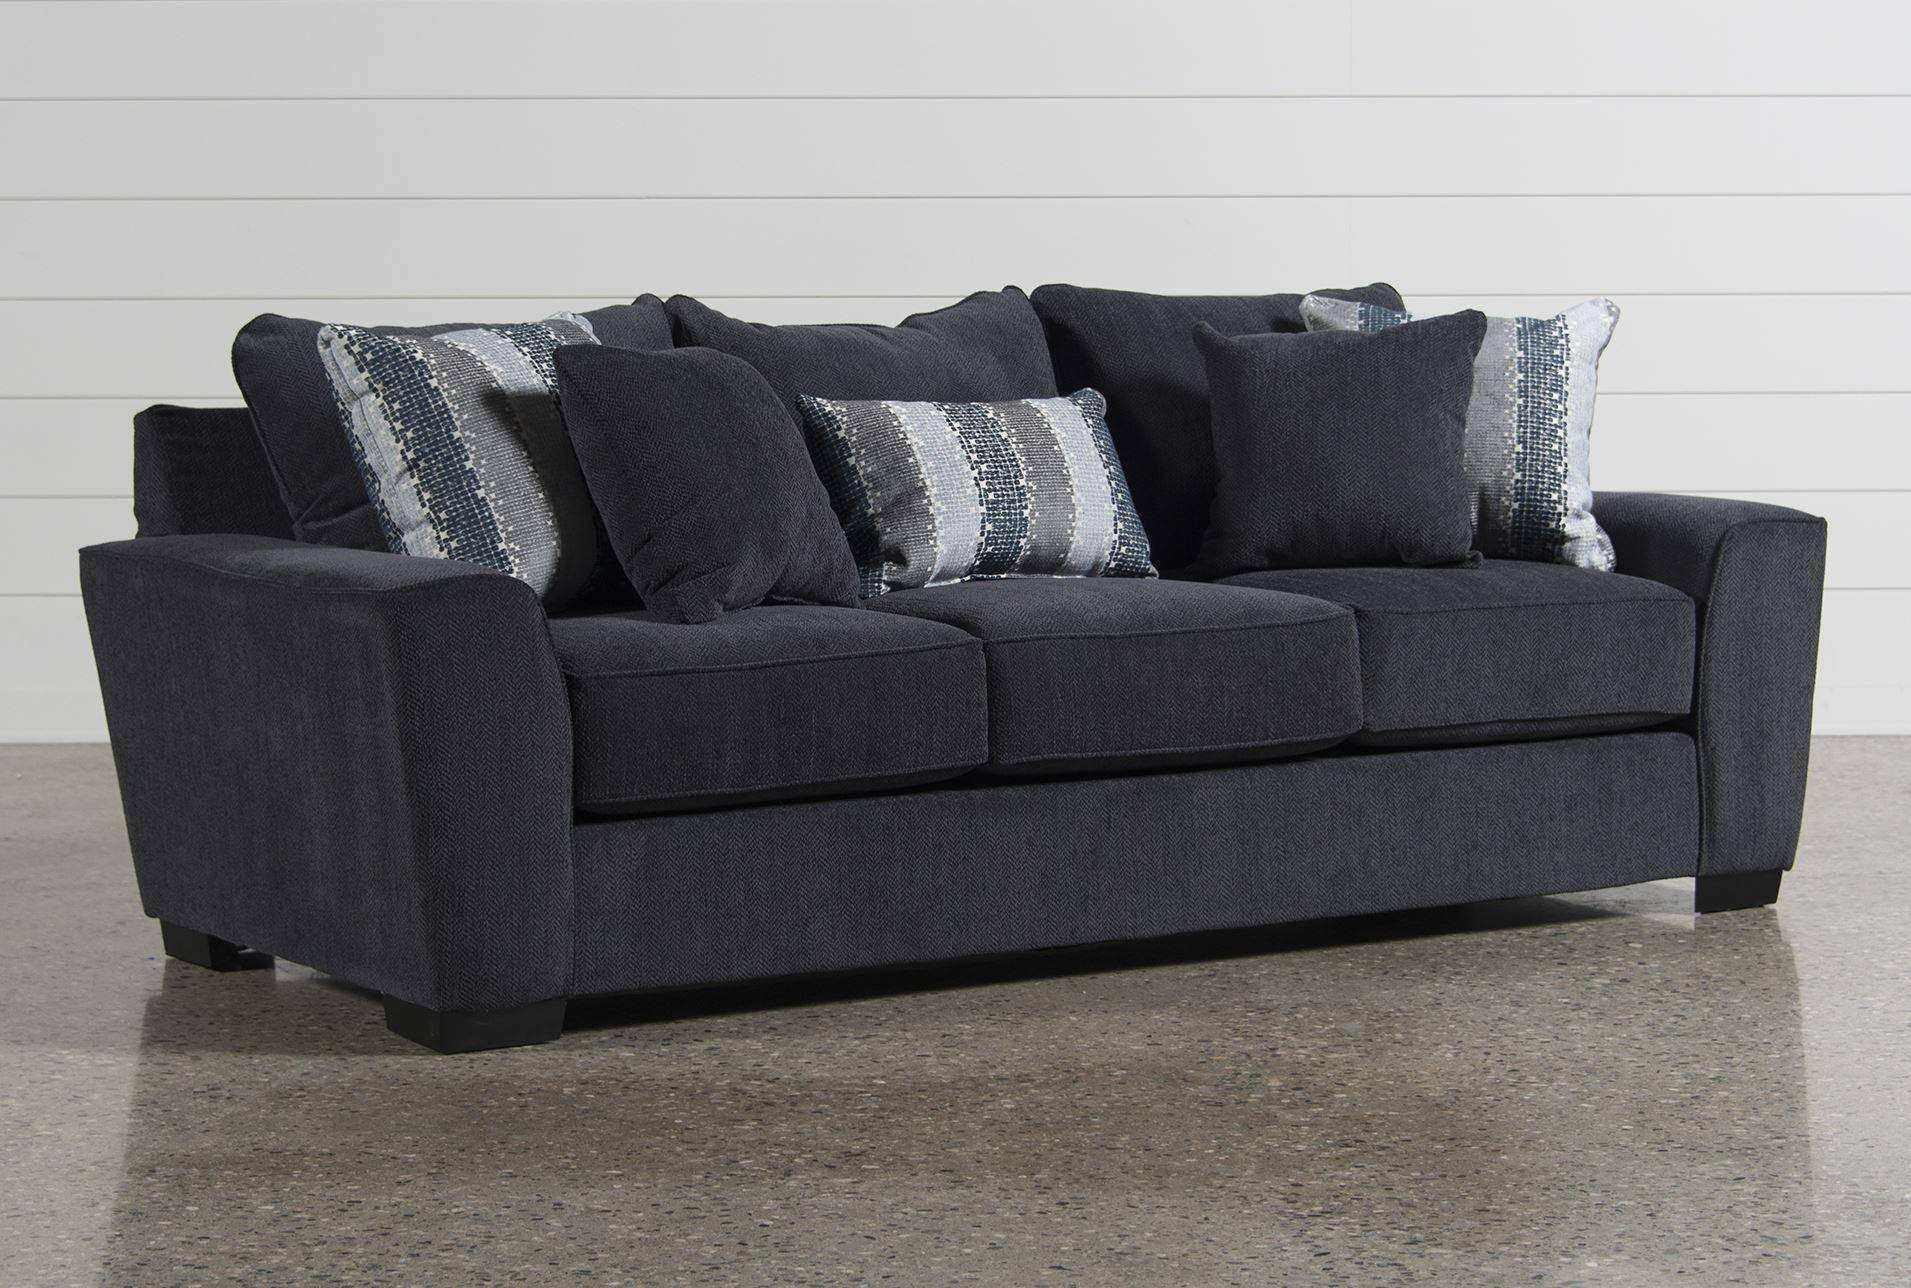 58 Unique Small Loveseat for Bedroom